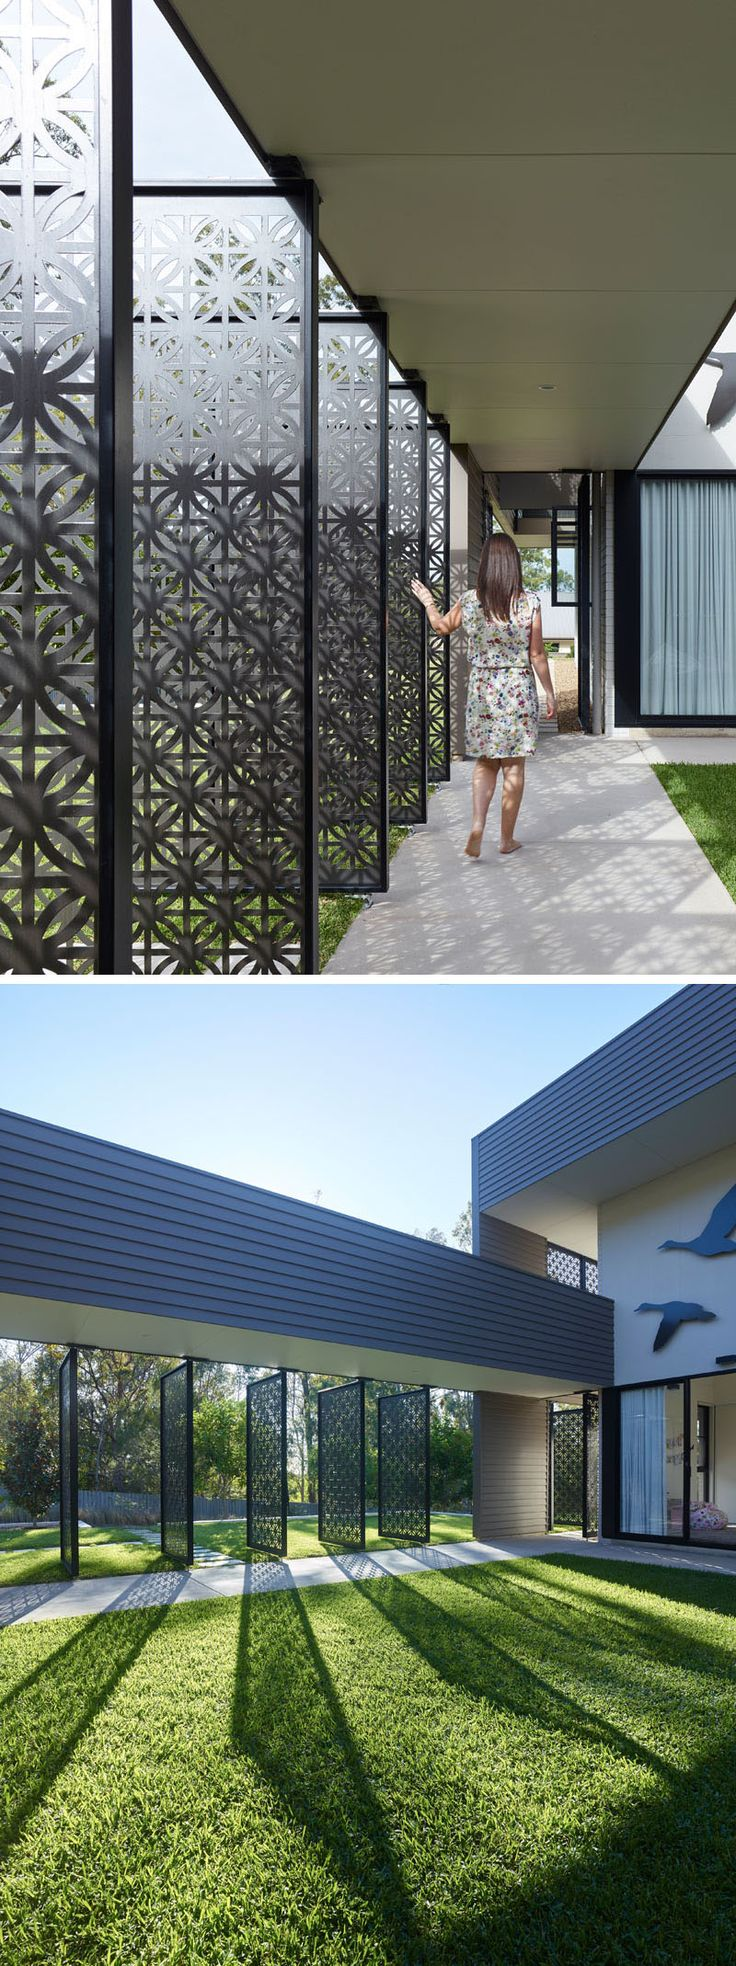 Hamptons beach house with elegant metal screen modern house designs - Decorative Laser Cut Screens Are Displayed Throughout This Australian House